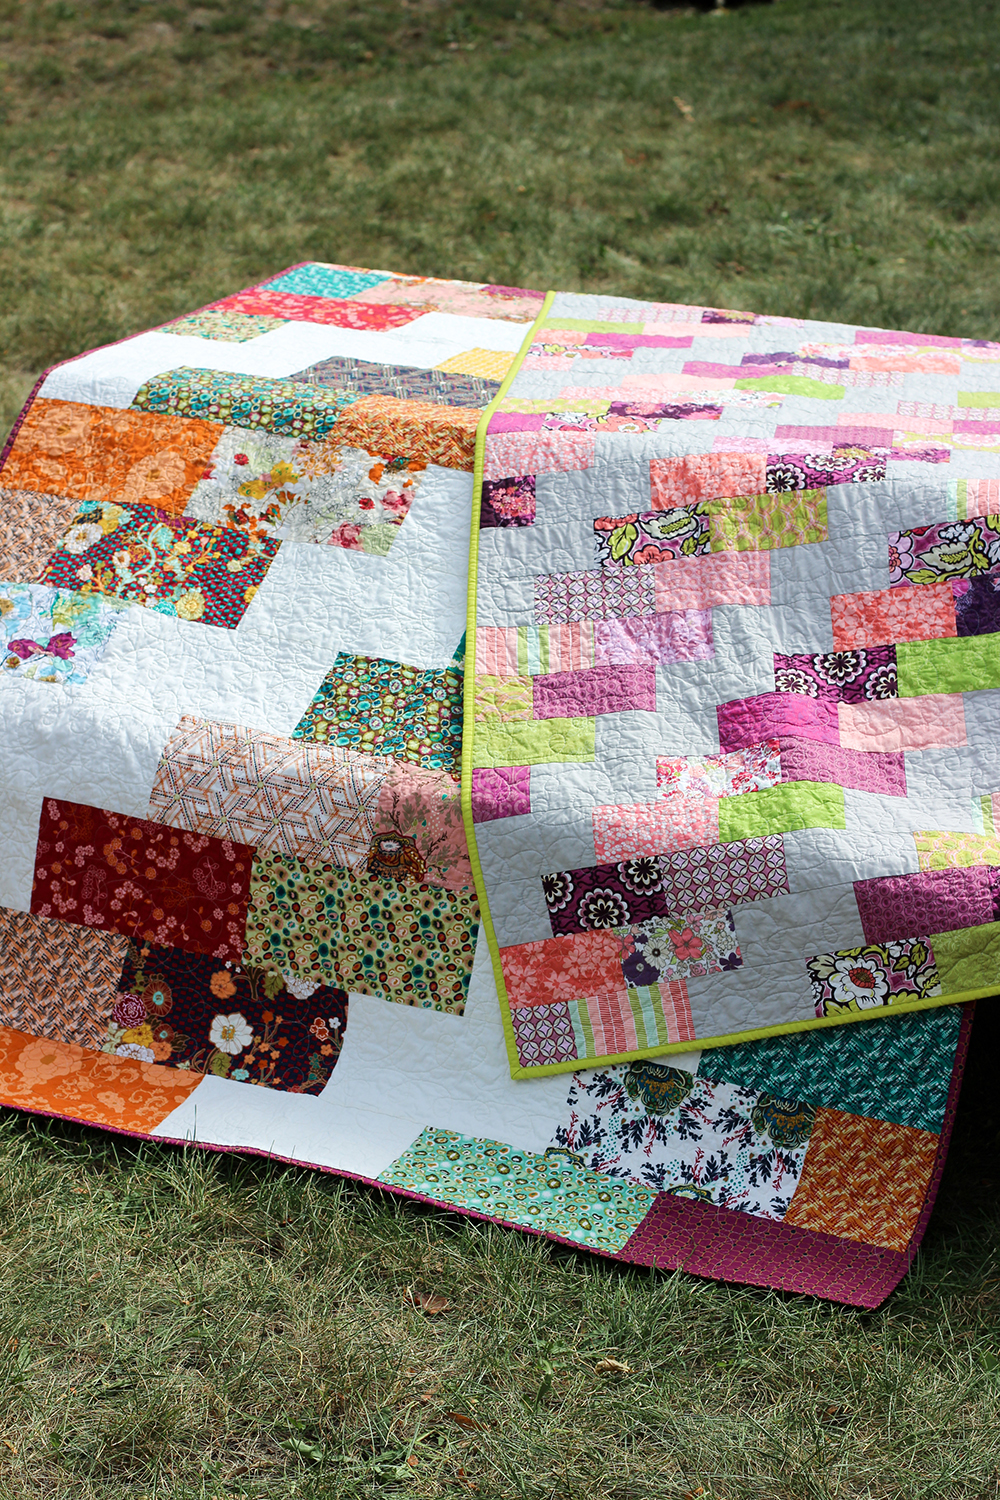 http://www.jenibakerpatterns.com/product/side-braid-quilt-pattern